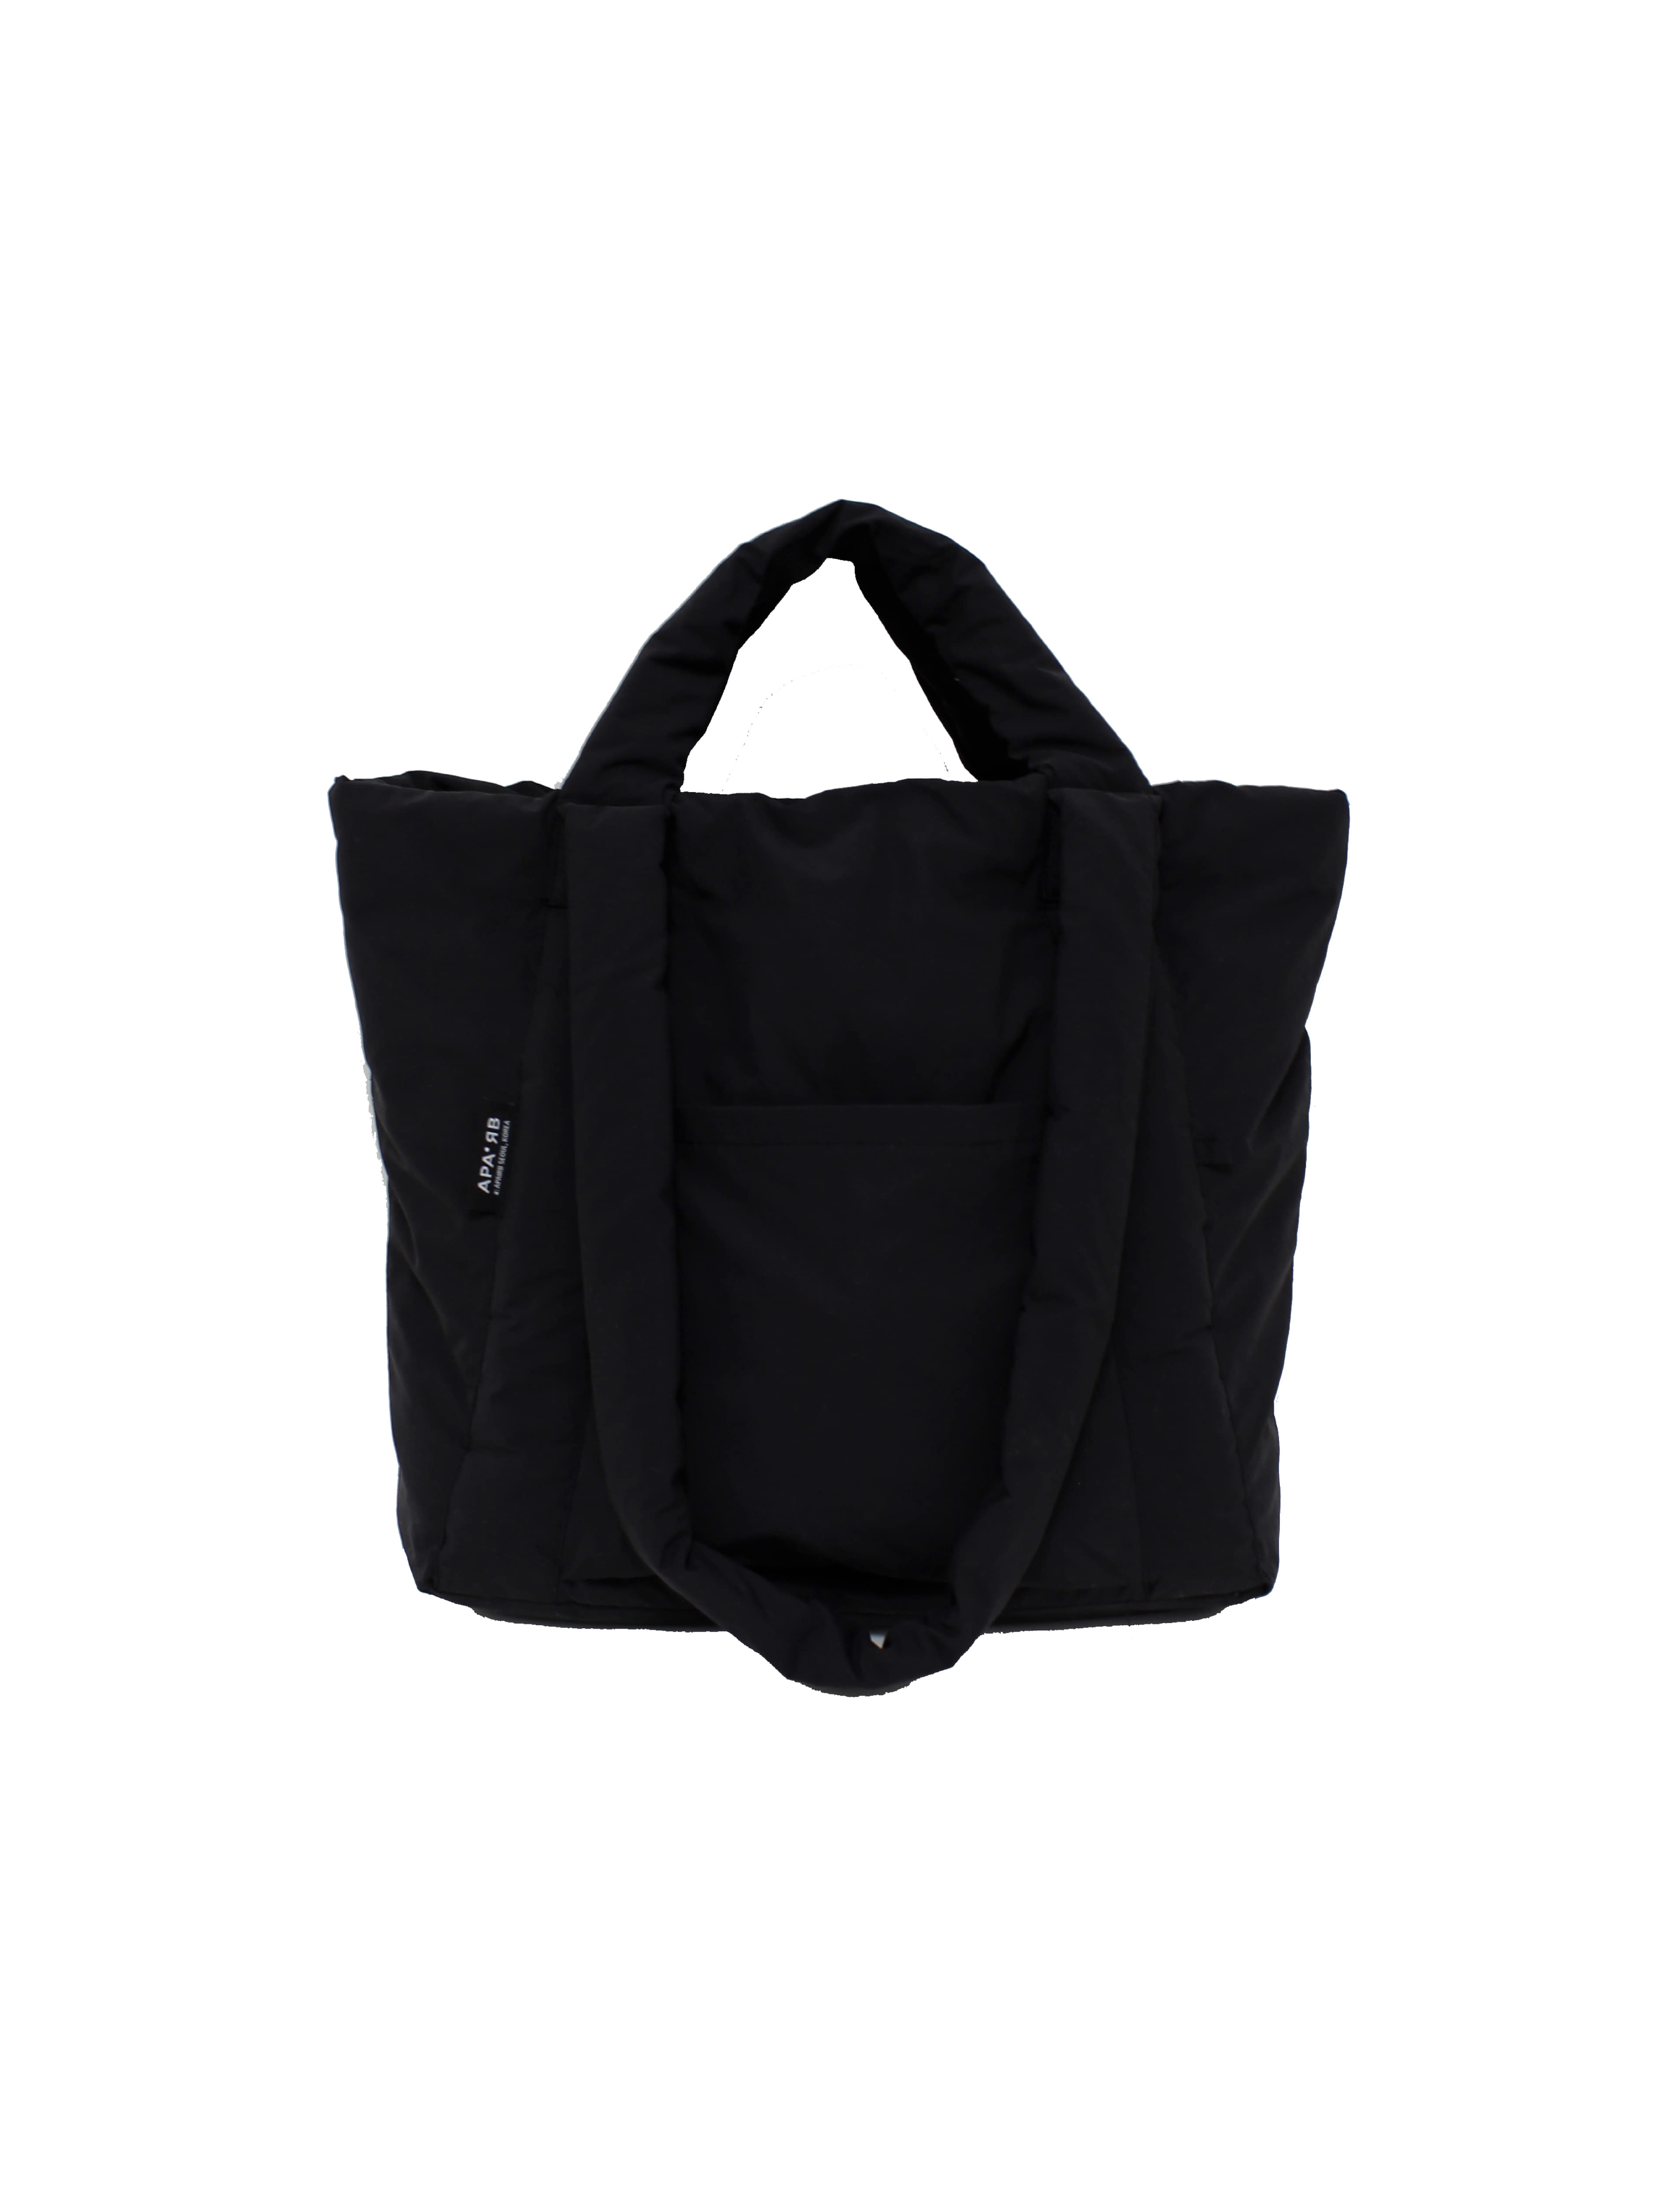 Winter Limited Bag (Black)